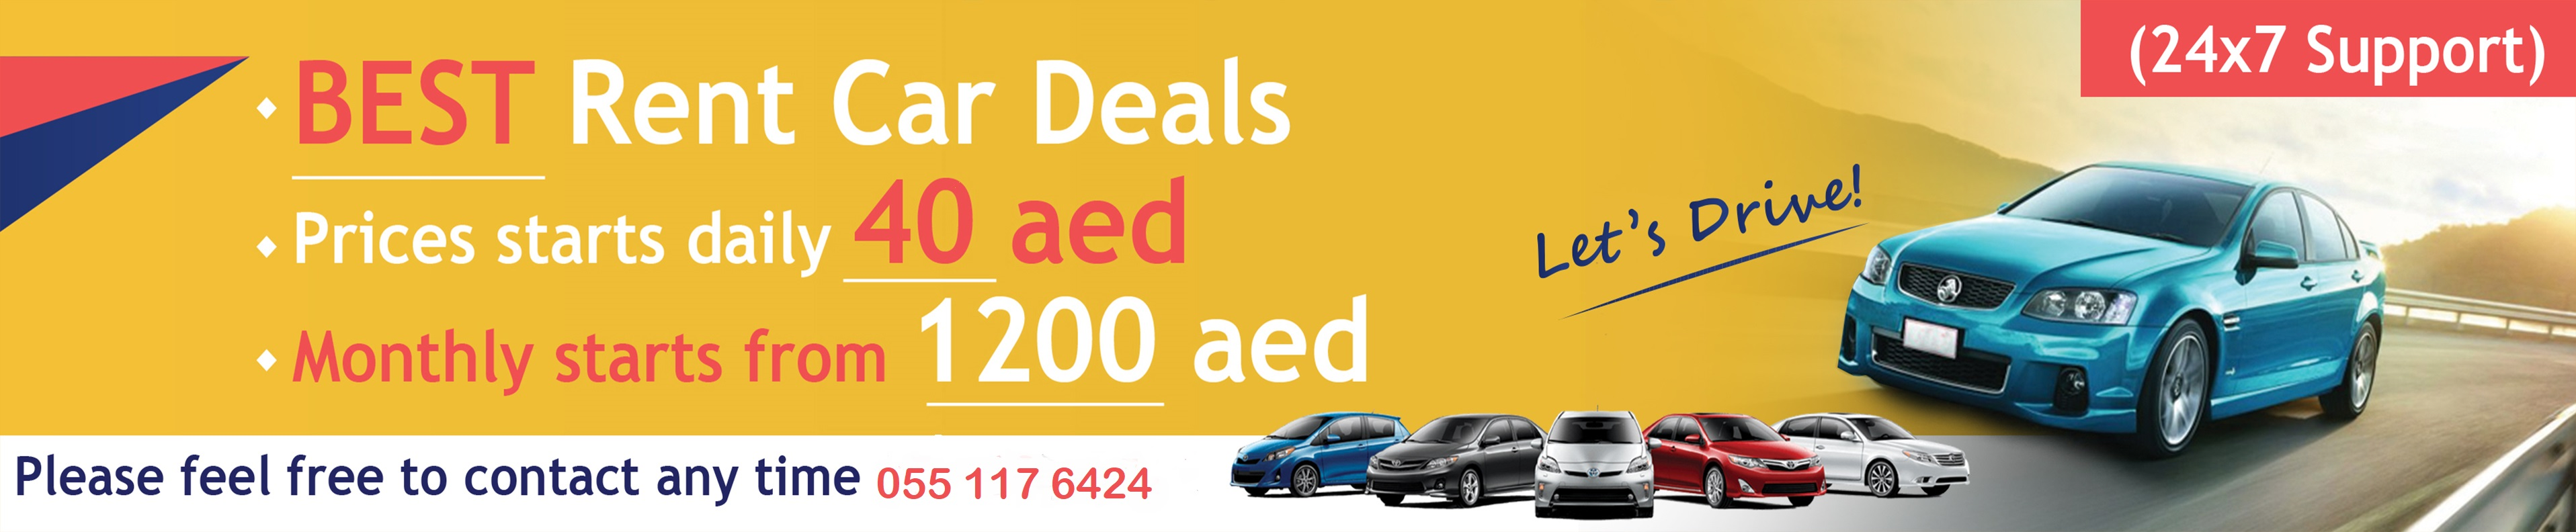 lookatme car rental dubai offer